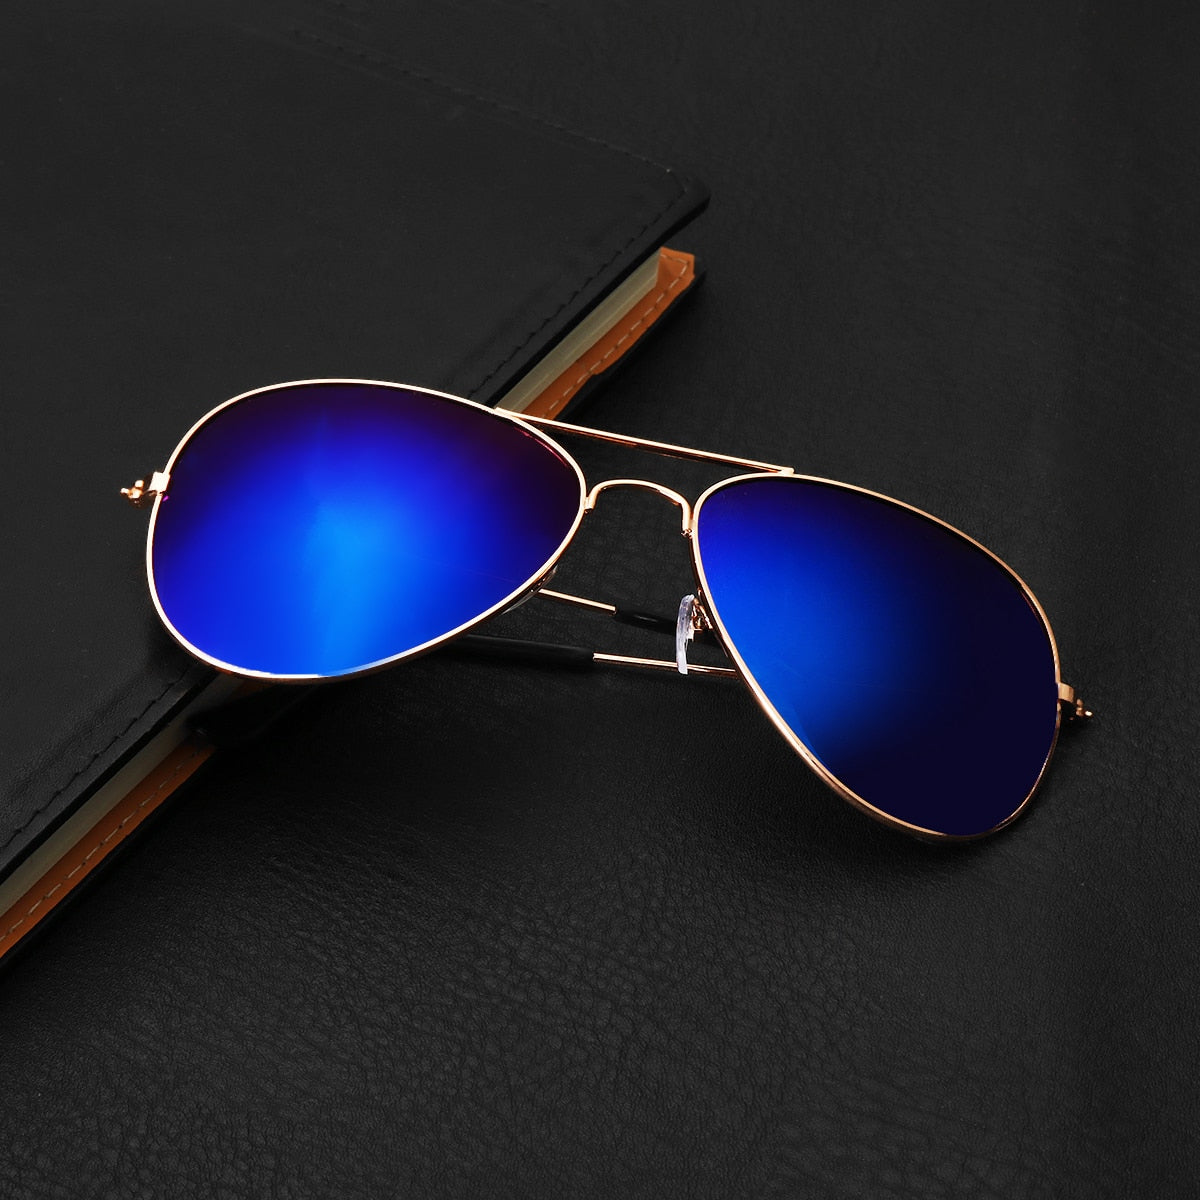 Men Women Retro Sunglasses Fishing Golf Ball Finder Glasses Eye Protection Golf Accessories Blue Lenses Outdoor Sport Sun Glass